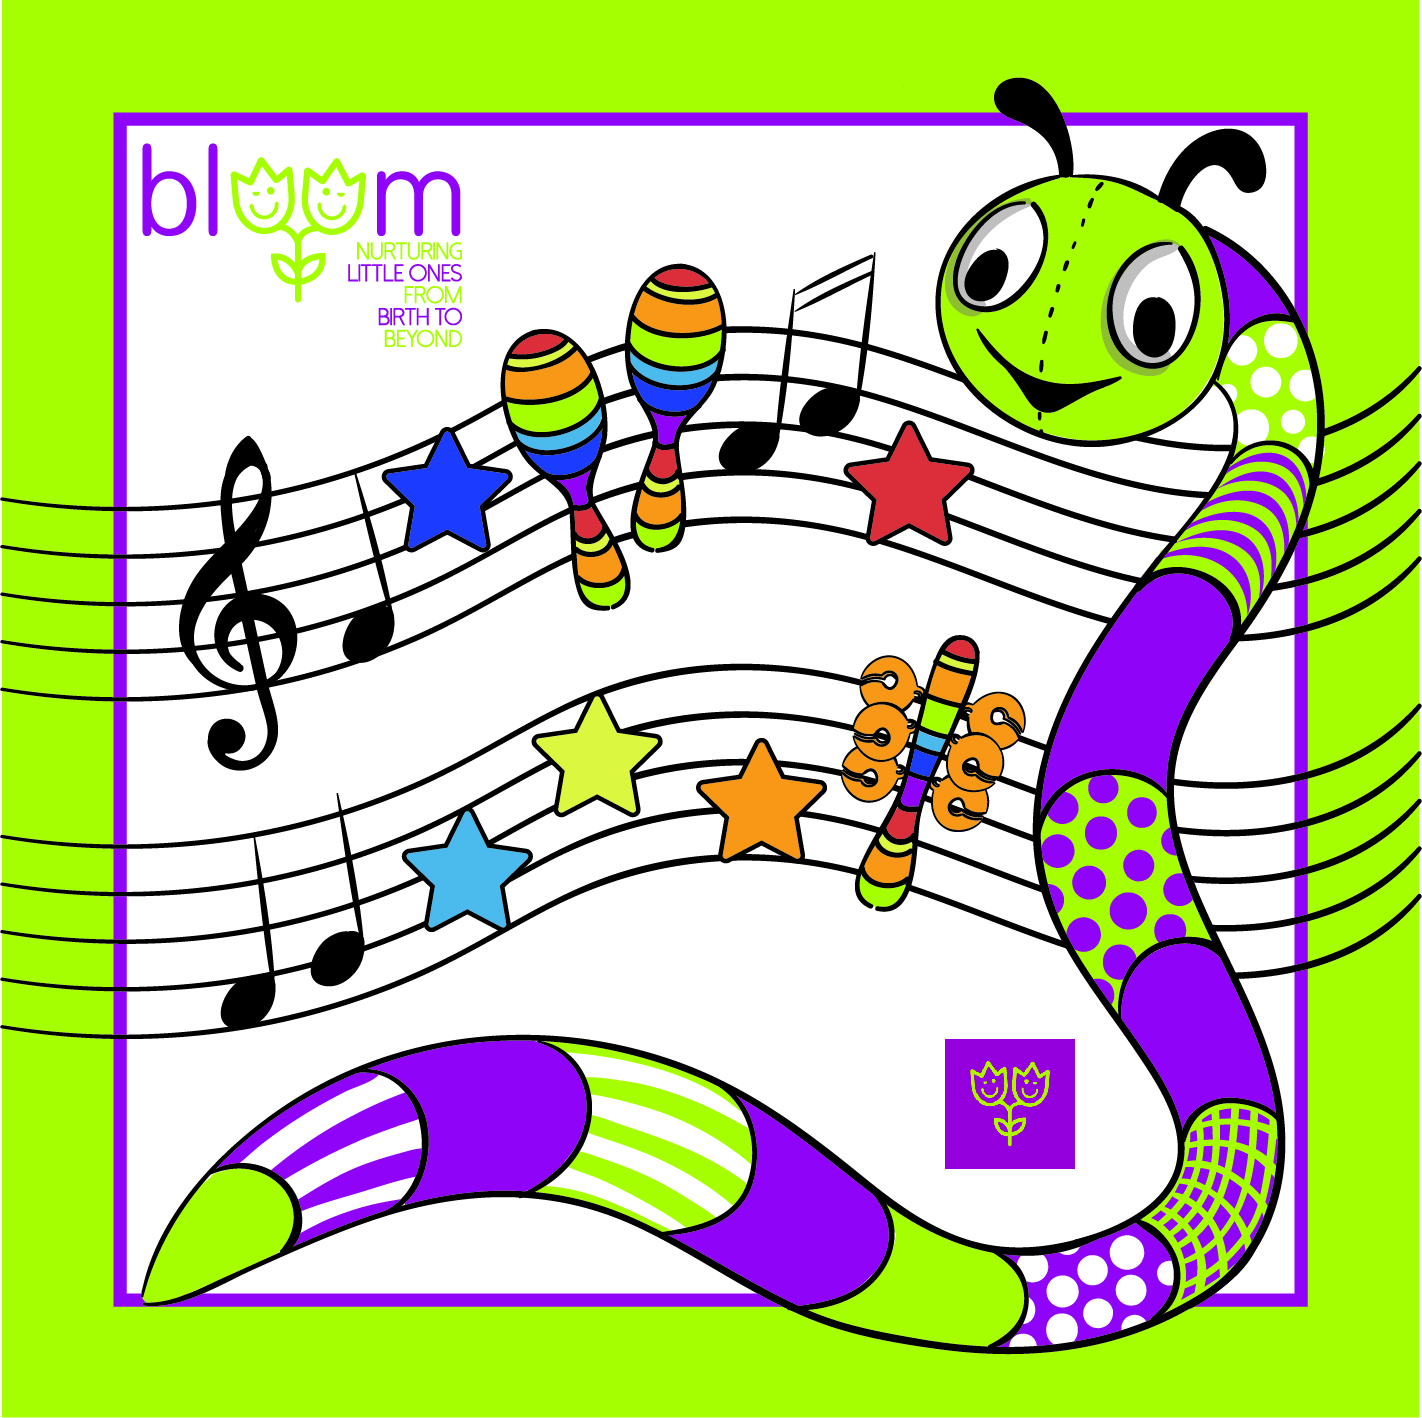 Bloom baby classes music